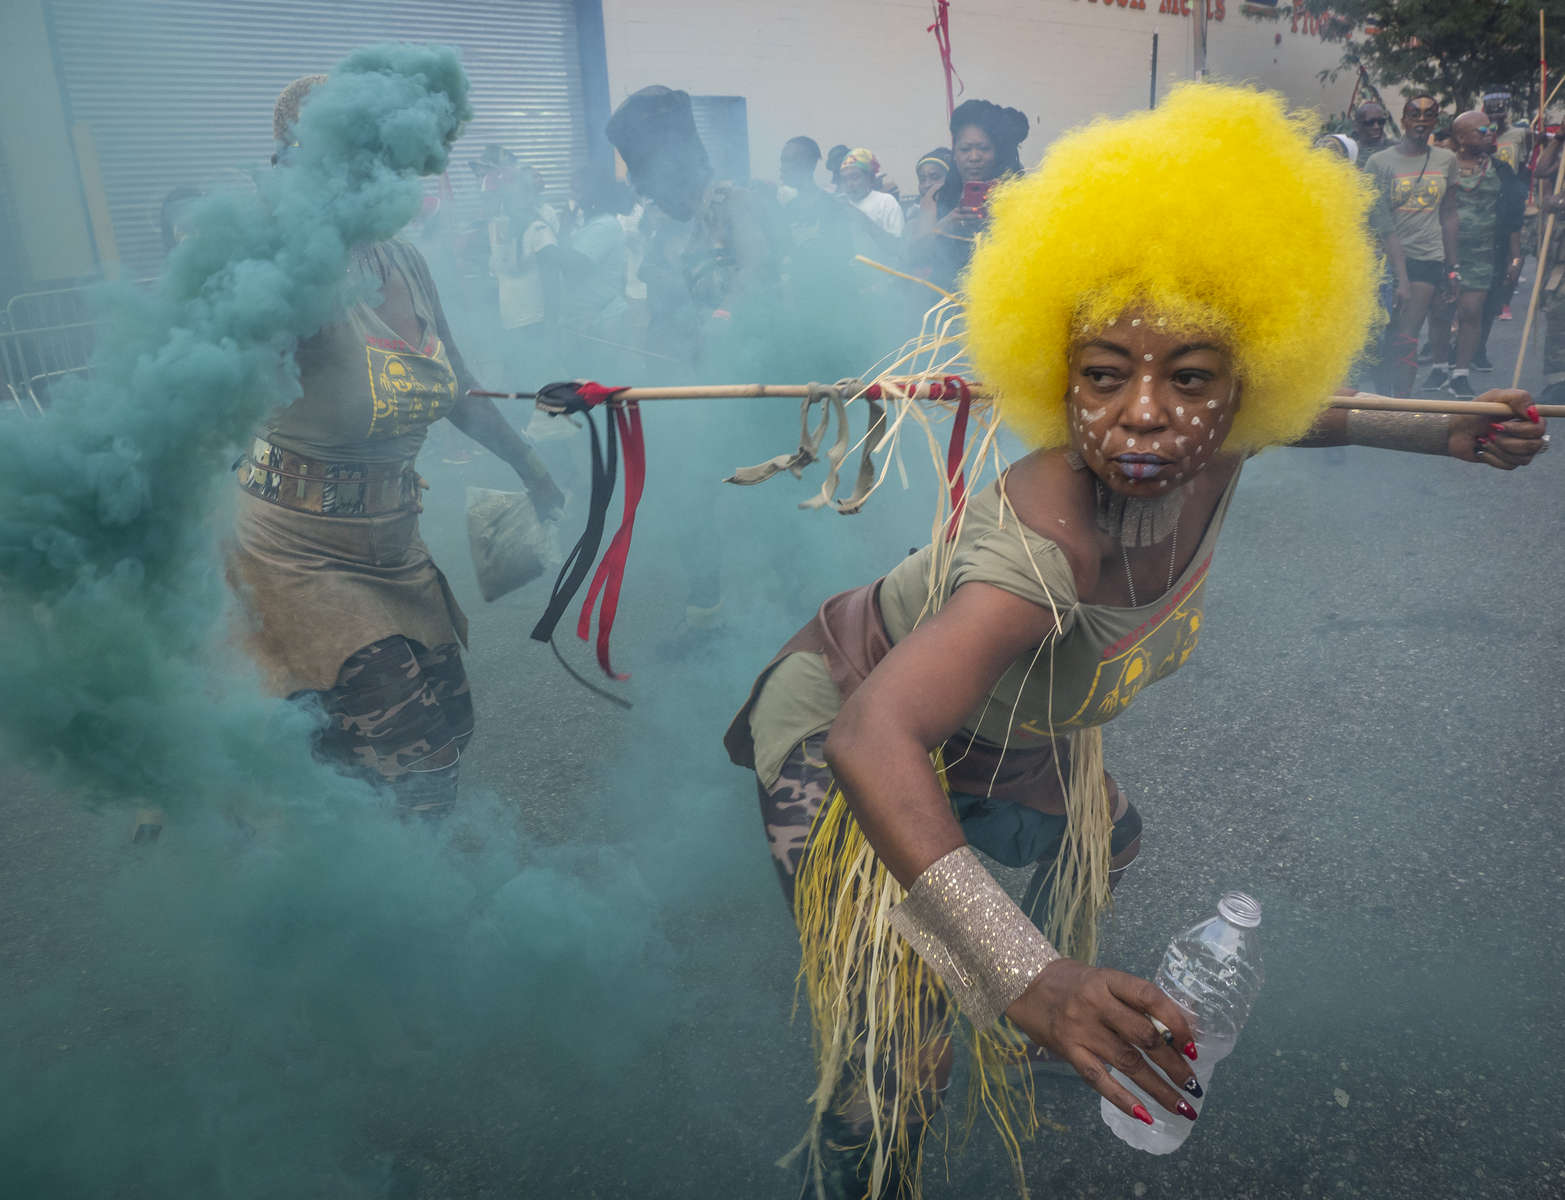 New Yorkers march at the annual J'Ouvert Parade held in Crown Heights, Brooklyn on Monday, September 3, 2018. The pre-dawn festival of J'Ouvert that translates to {quote}day break{quote} is celebrated by people of West Indian decent to mark the start of the Caribbean carnival celebrations.